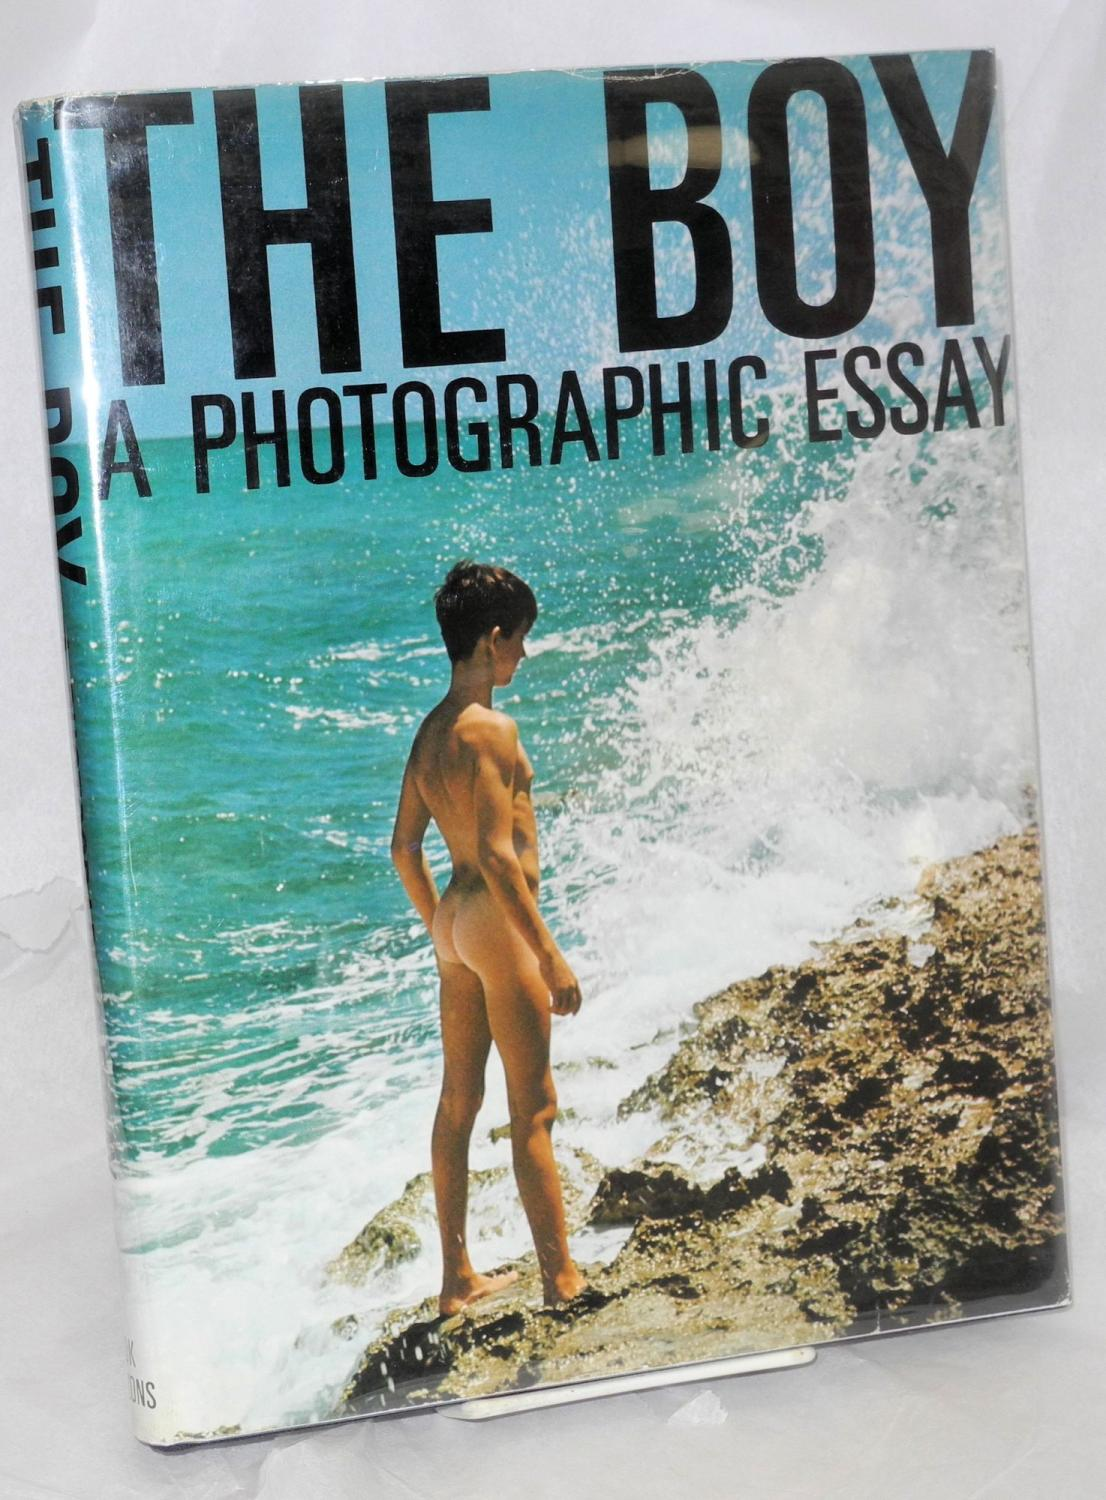 The boy: a photographic essay: St. Martin, Georges & Ronald C. Nelson, editors, various ...